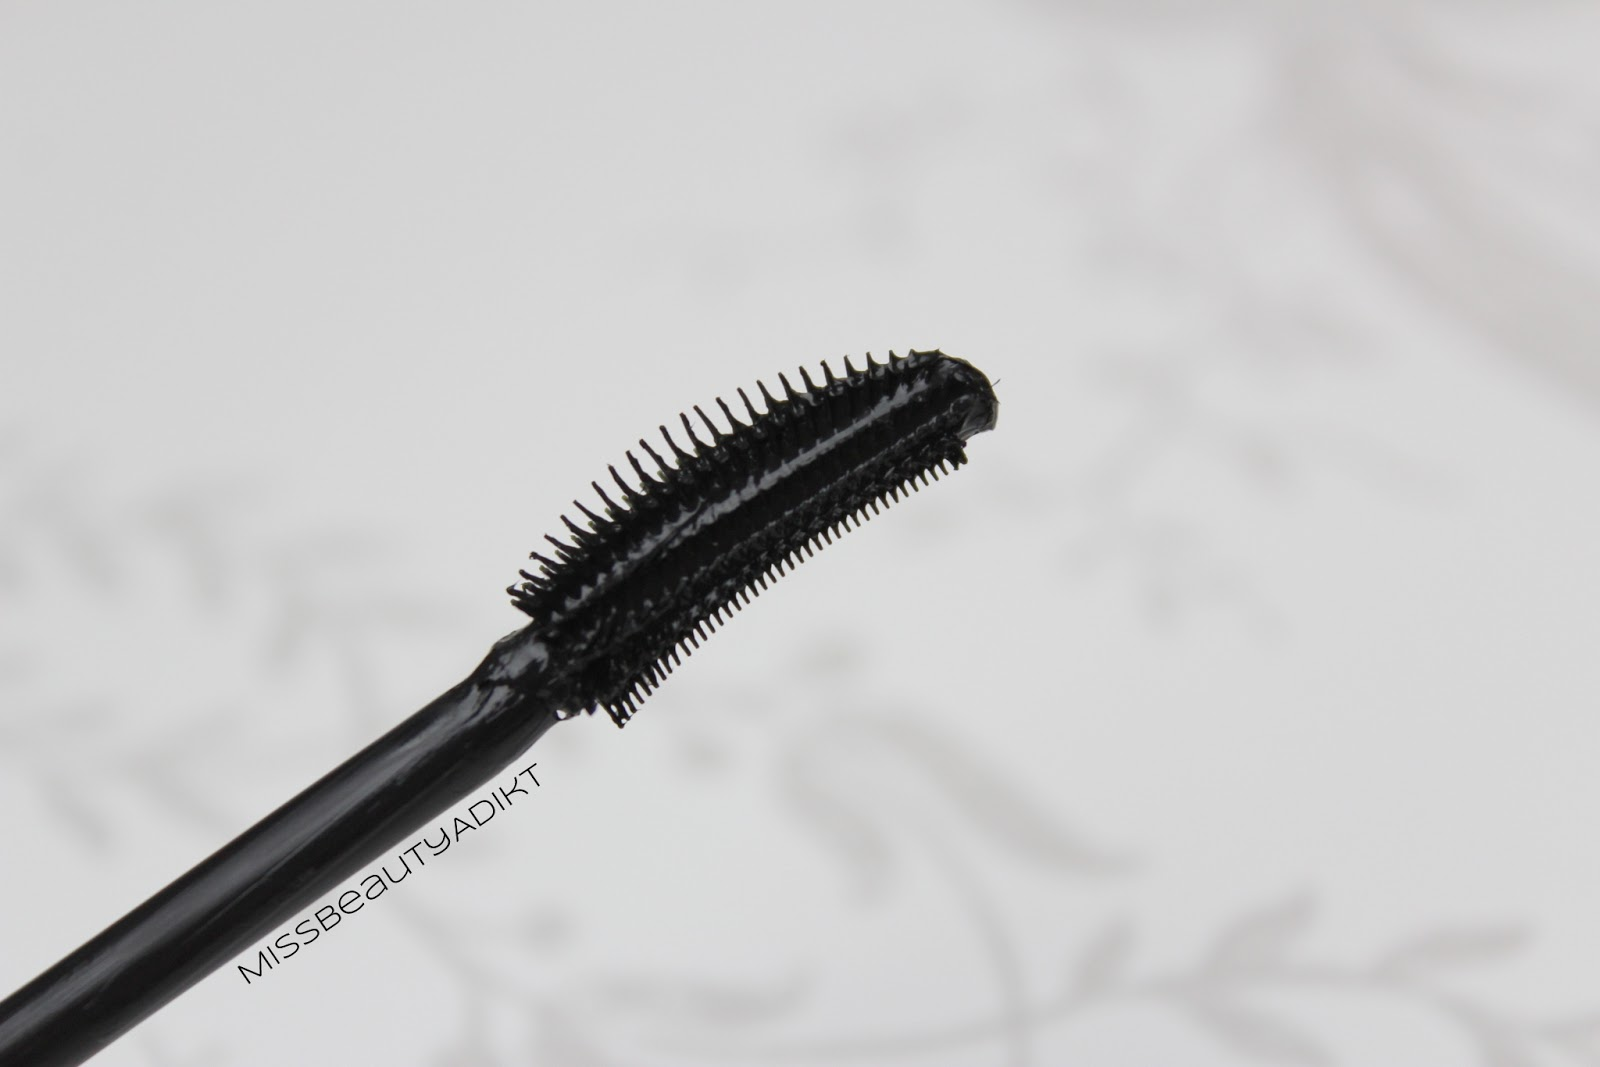 d601d2890aa This mascara does remind me of the L'Oreal False Lash Flutter, with the  curved mascara wand. On the inner part of the wand, the bristles are very  densely ...